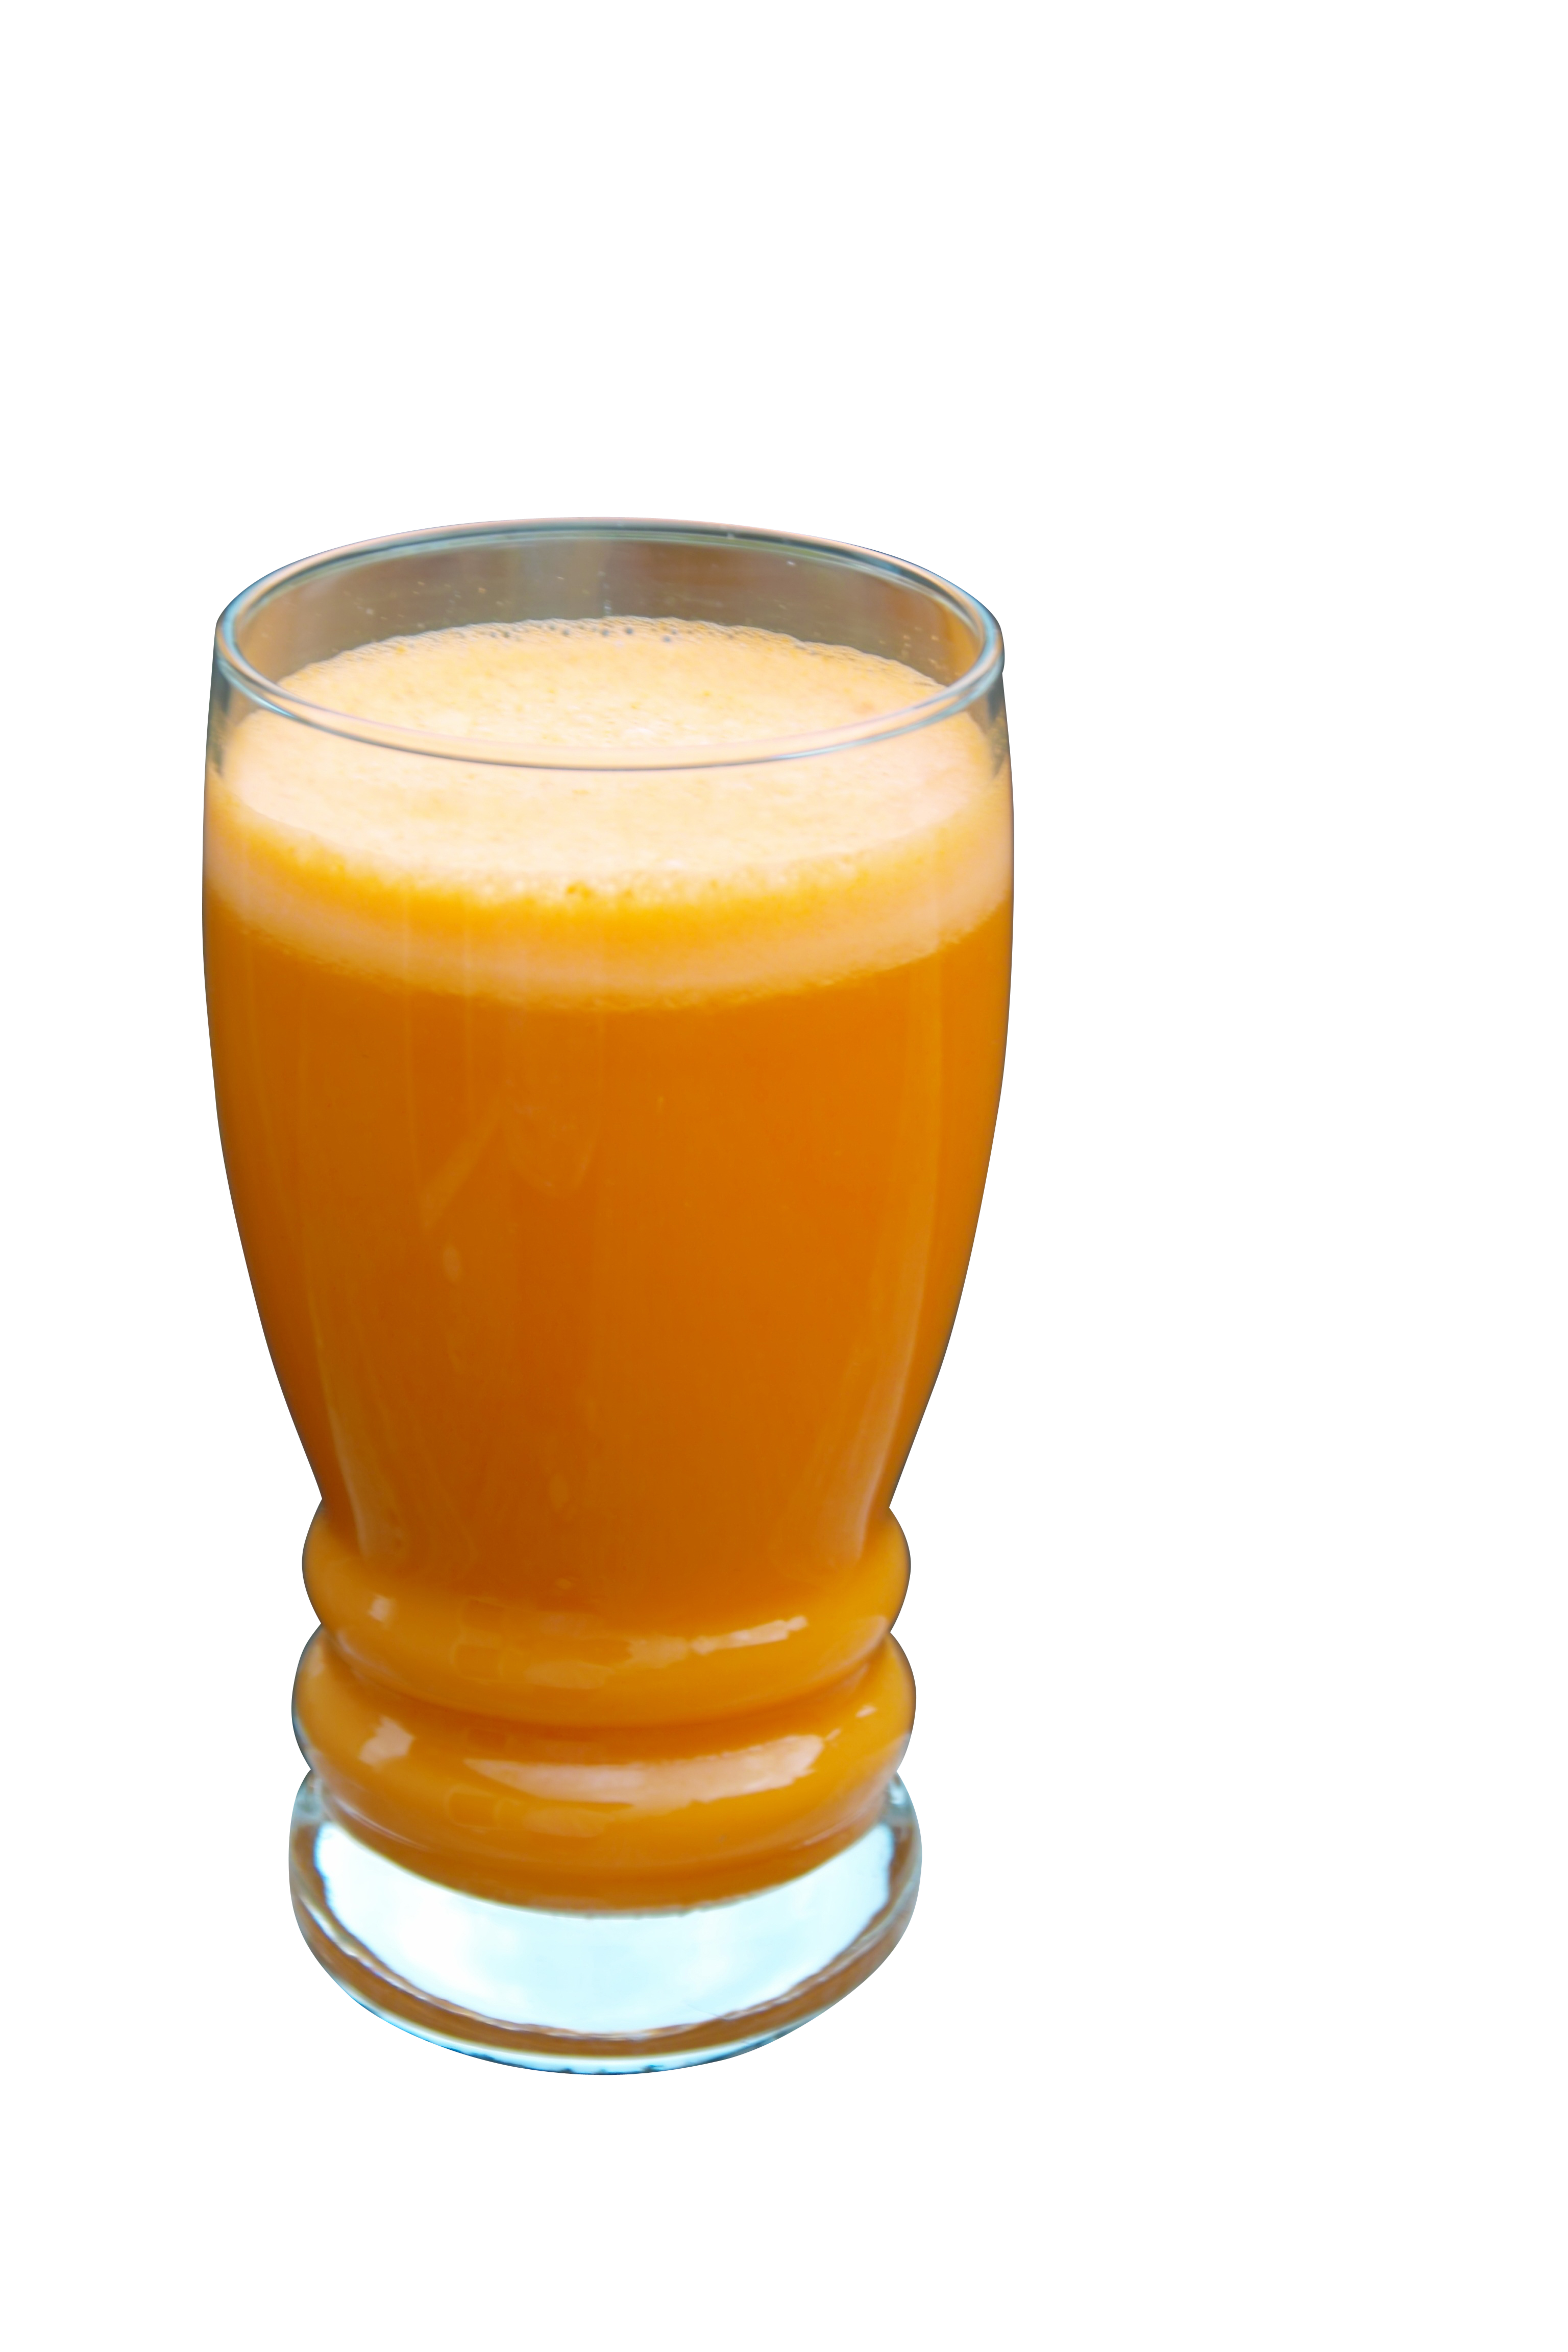 A Glass Filled with Orange Carrot Juice